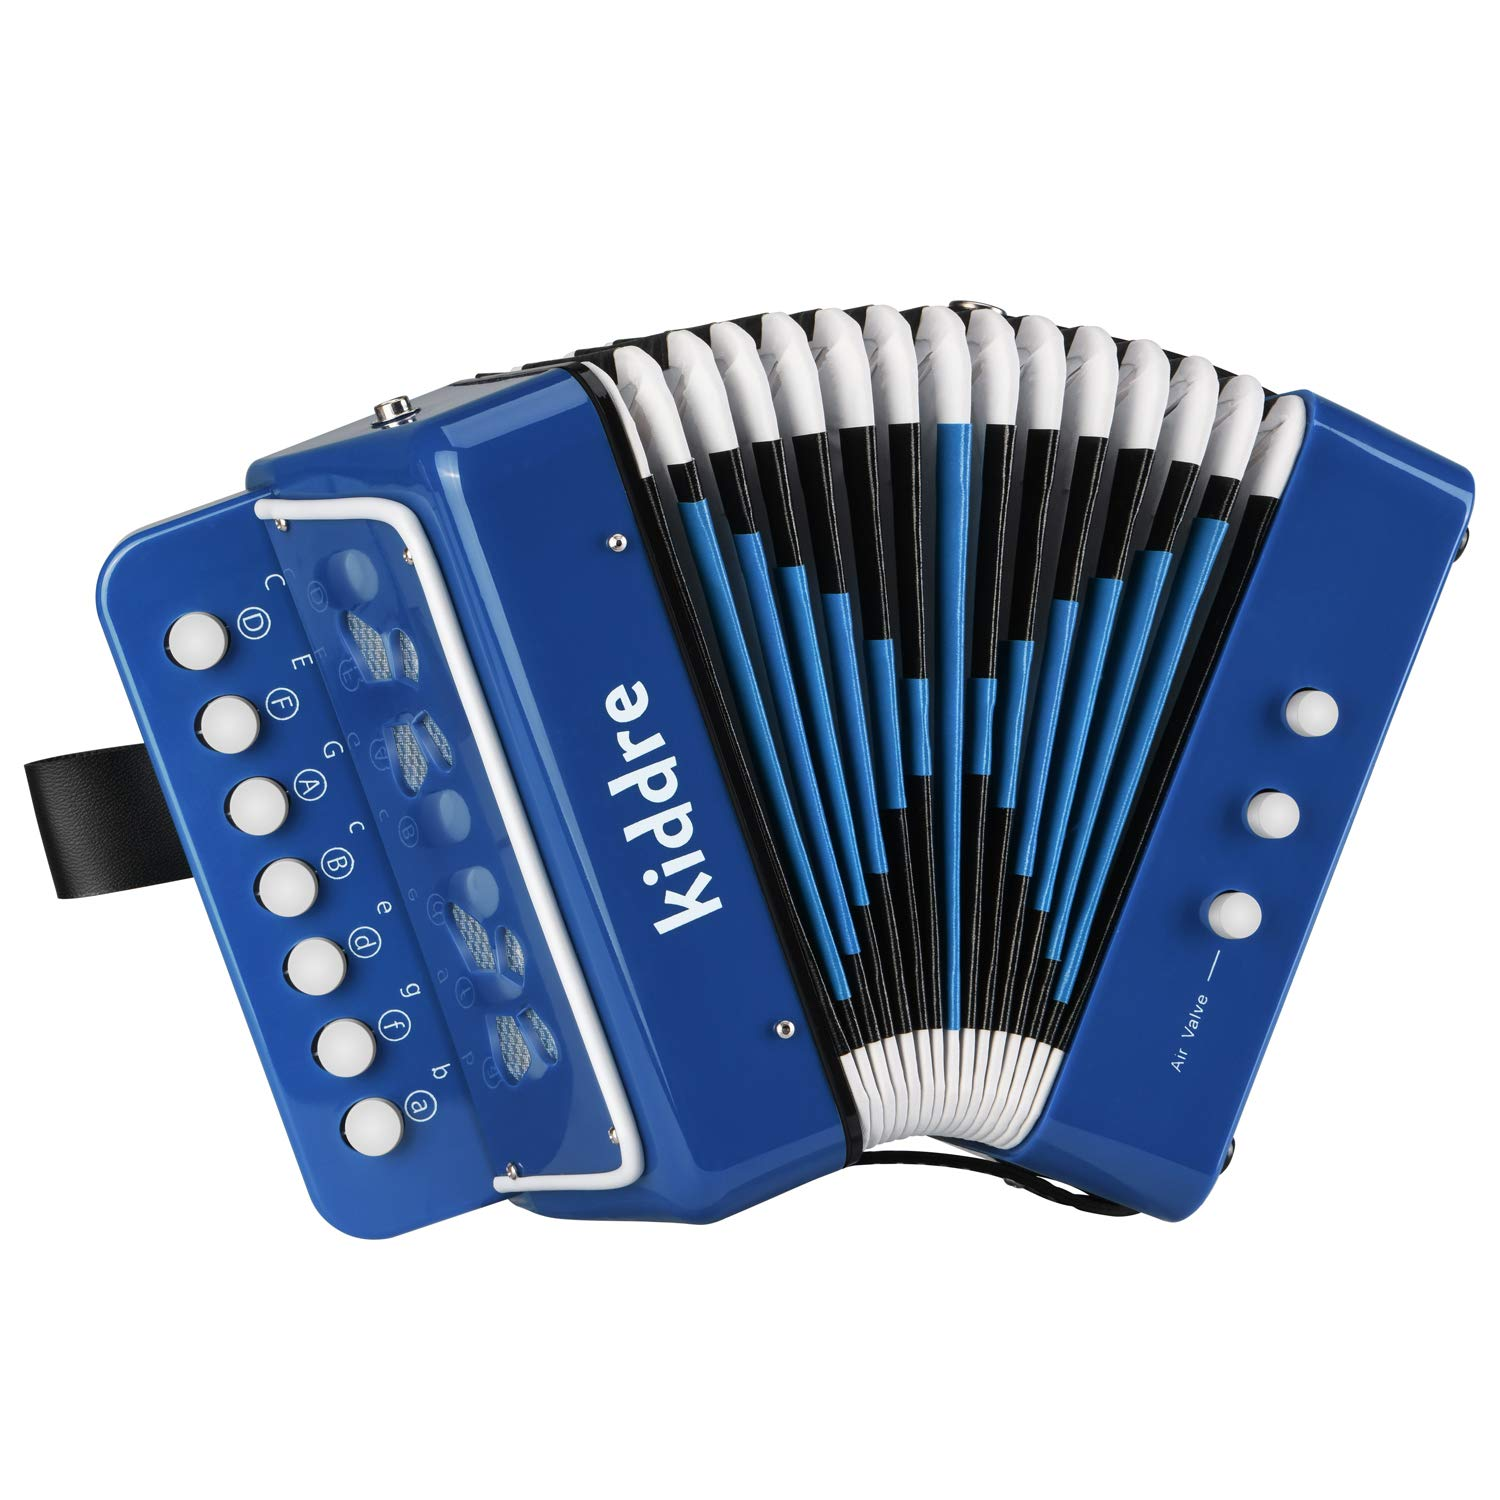 Kiddire 10 Keys Kids Accordion Toy Accordion Musical Instruments for Children Kids Toddlers (Blue)